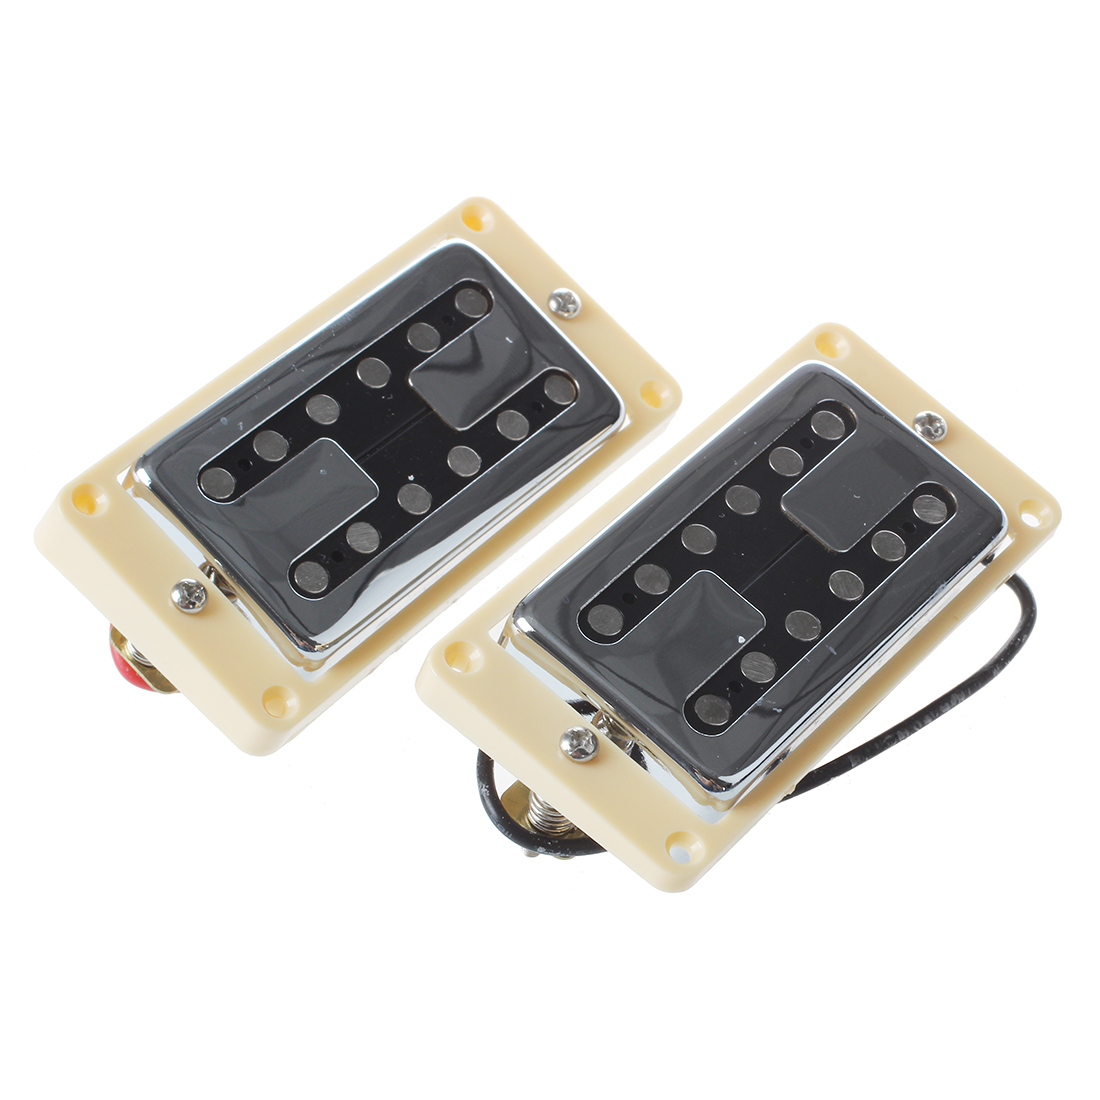 HOT 5X Chrome Neck And Bridge Humbucker Pickups w/ Cream Frame humbucker pickup for electric guitar double coil bridge and neck pickups set replacement chrome